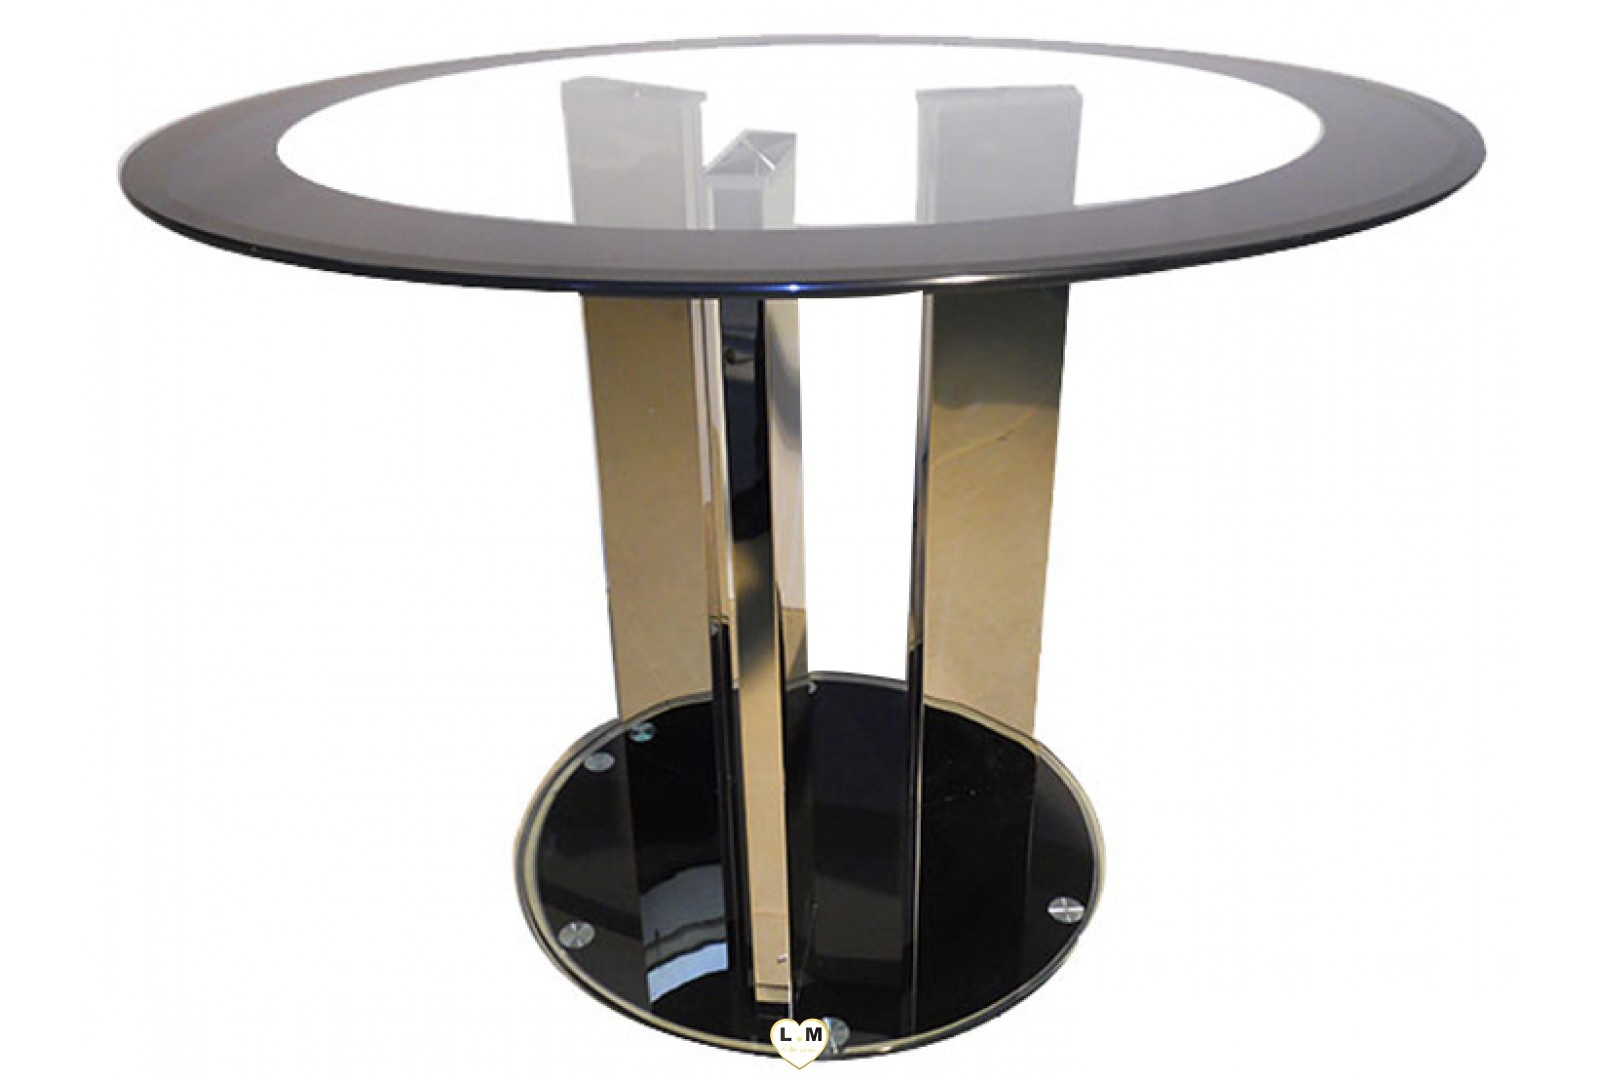 Table salle a manger ronde design maison design for Salle a manger design table ronde